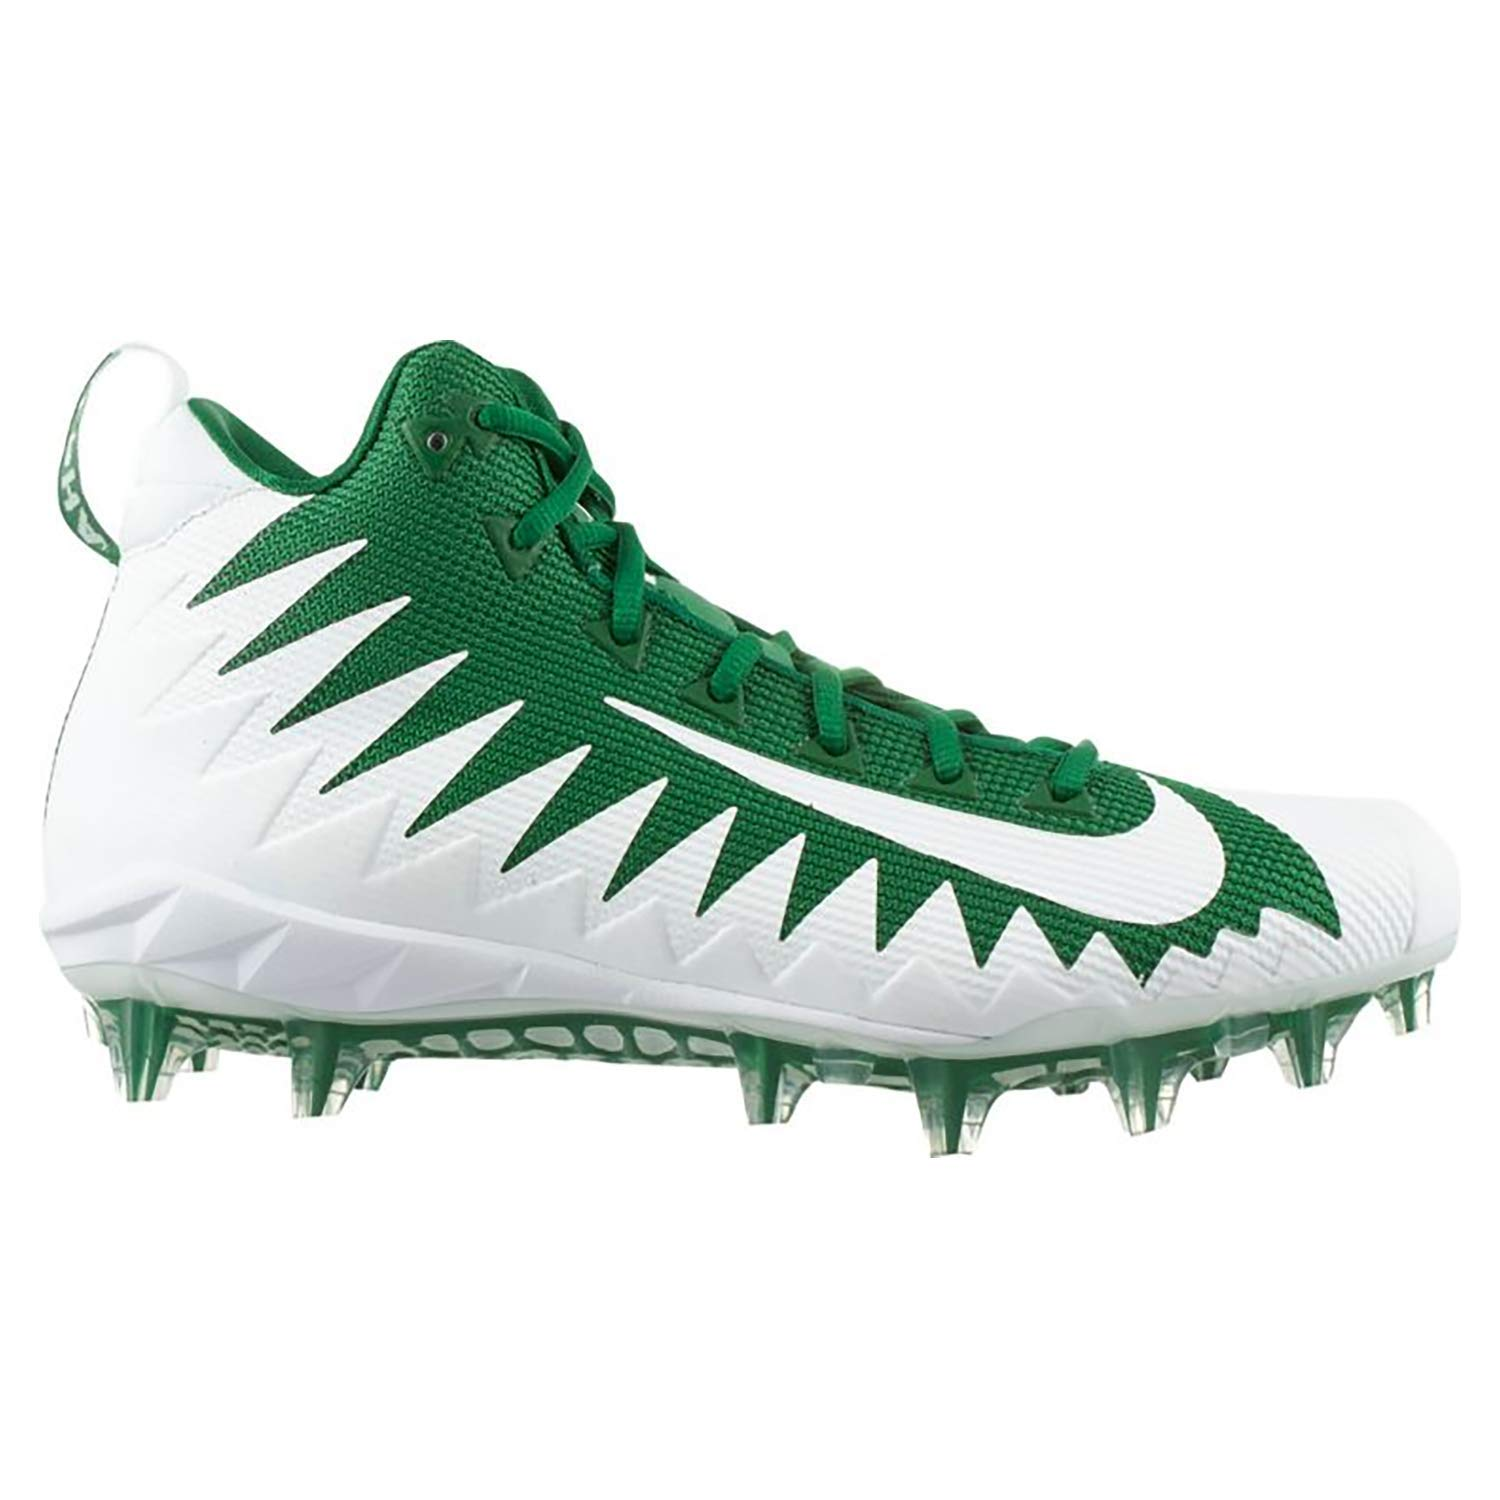 1771d2023e0 Best Rated in Football Footwear & Helpful Customer Reviews - Amazon.com